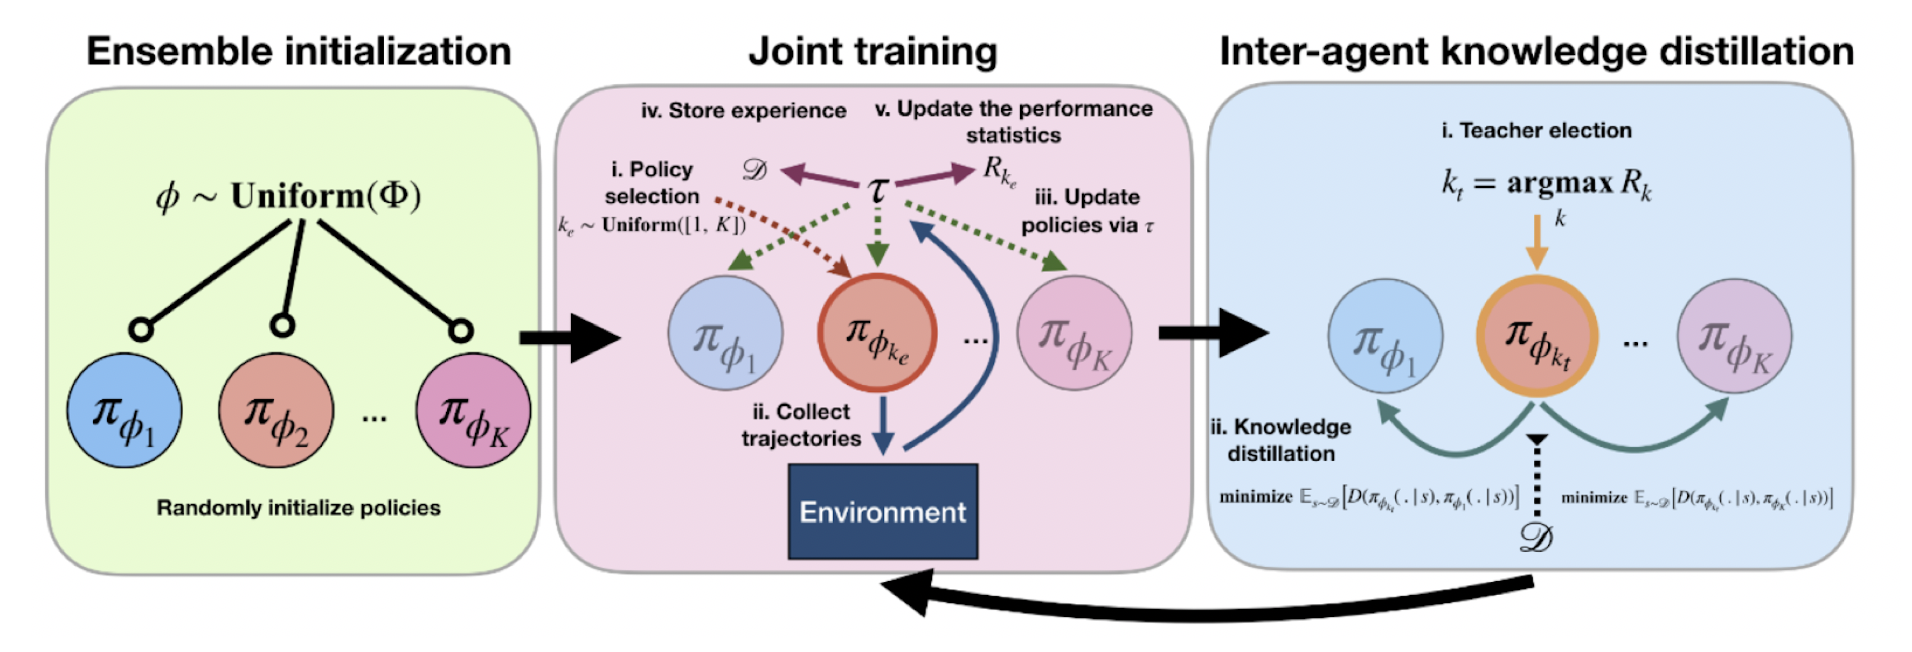 Swarm-inspired Reinforcement Learning via Collaborative Inter-agent Knowledge Distillation